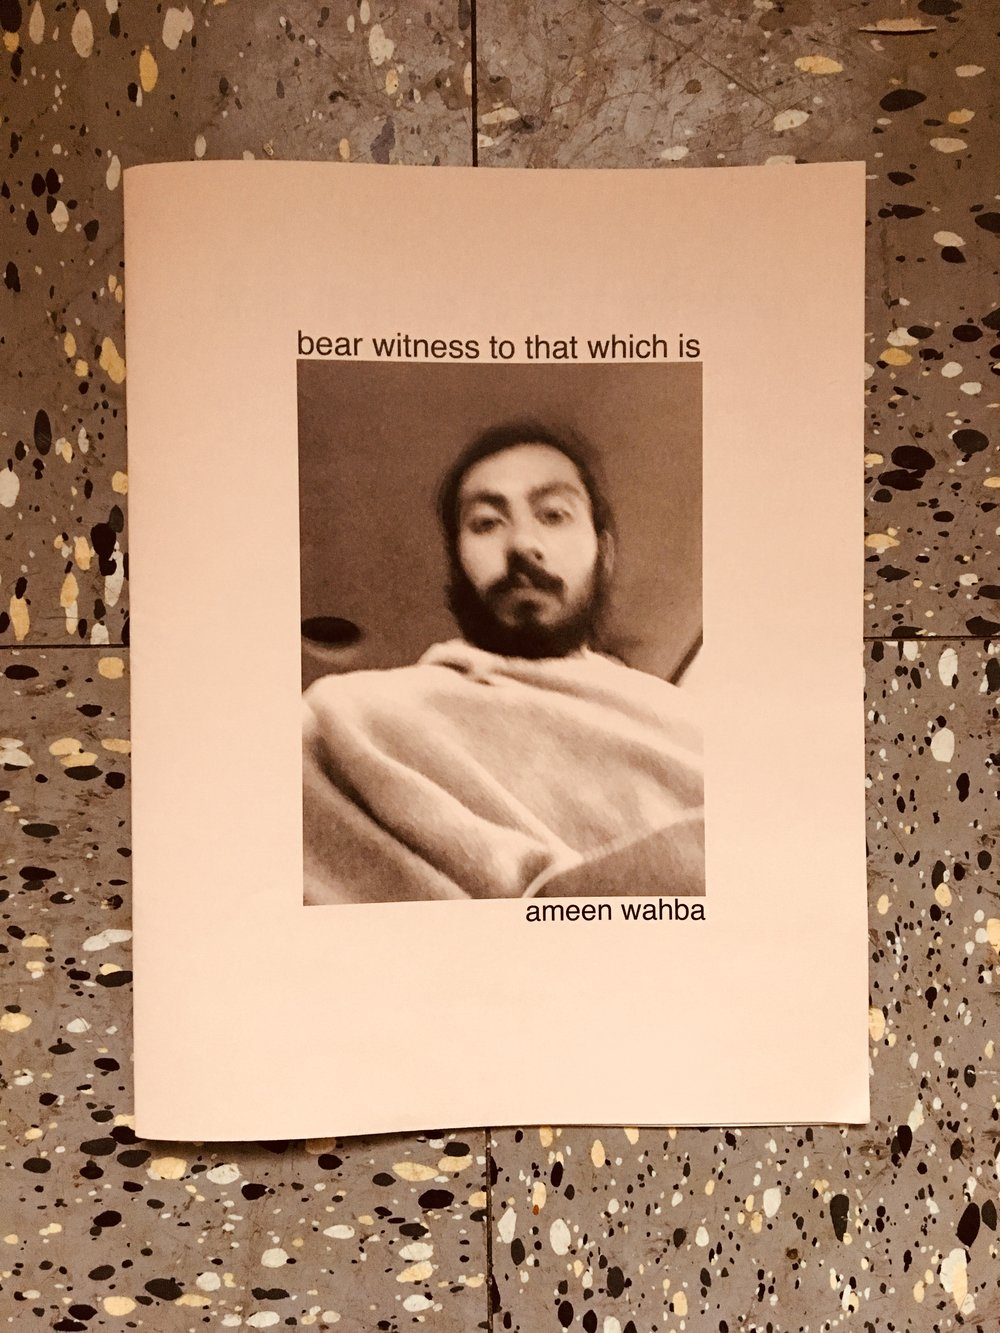 bear witness to that which is by ameen wahba